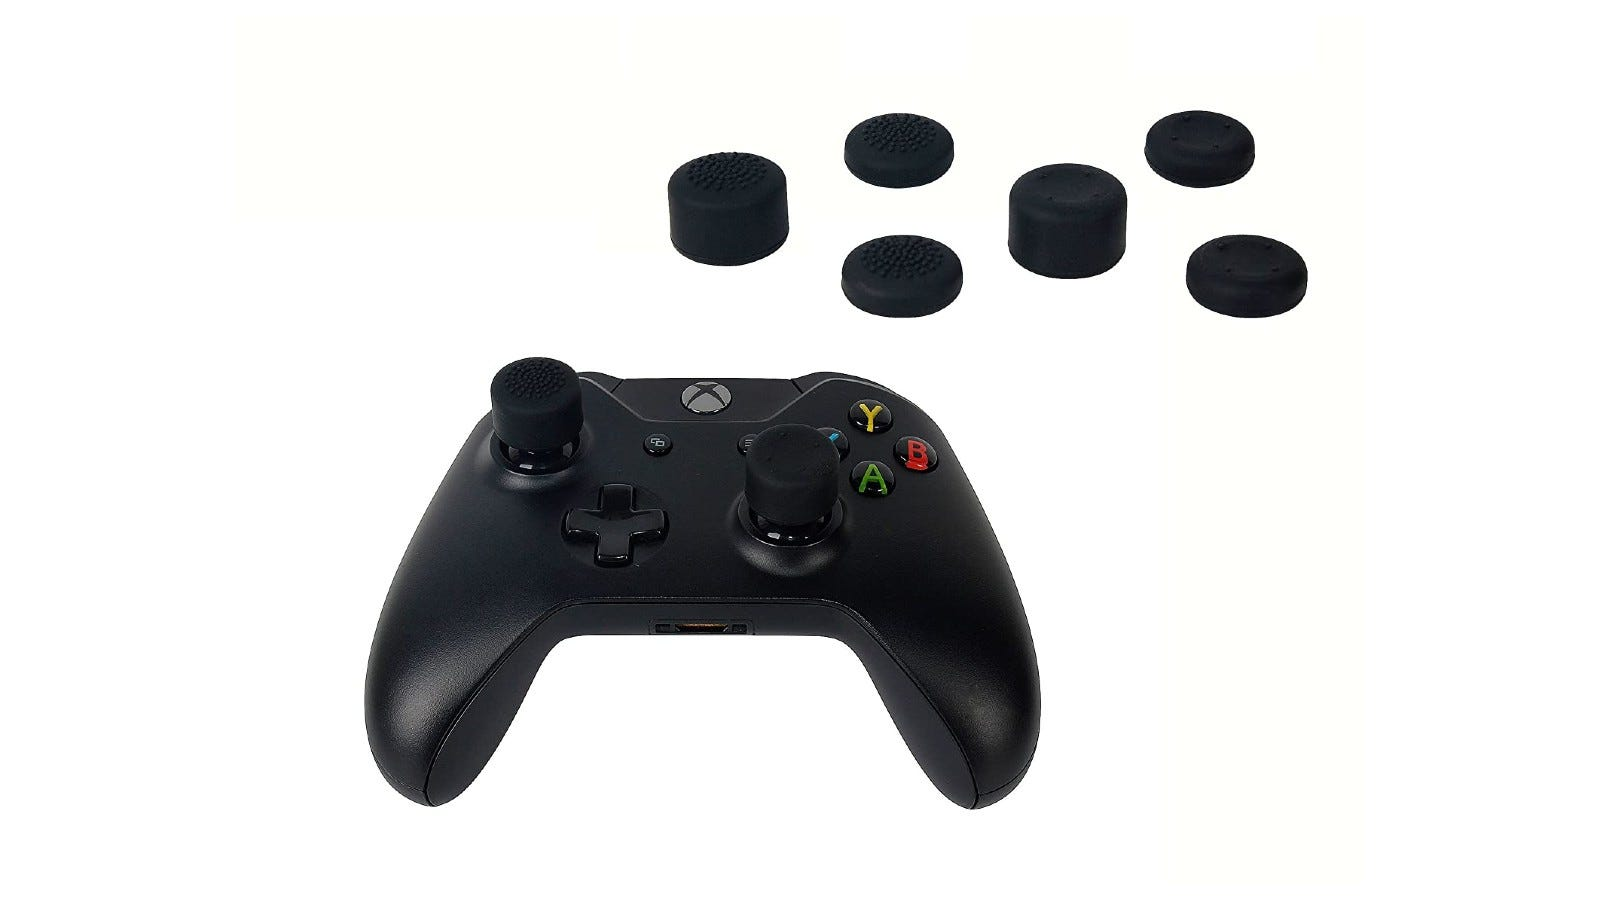 Durable Xbox One thumb grips made of rubberized silicone